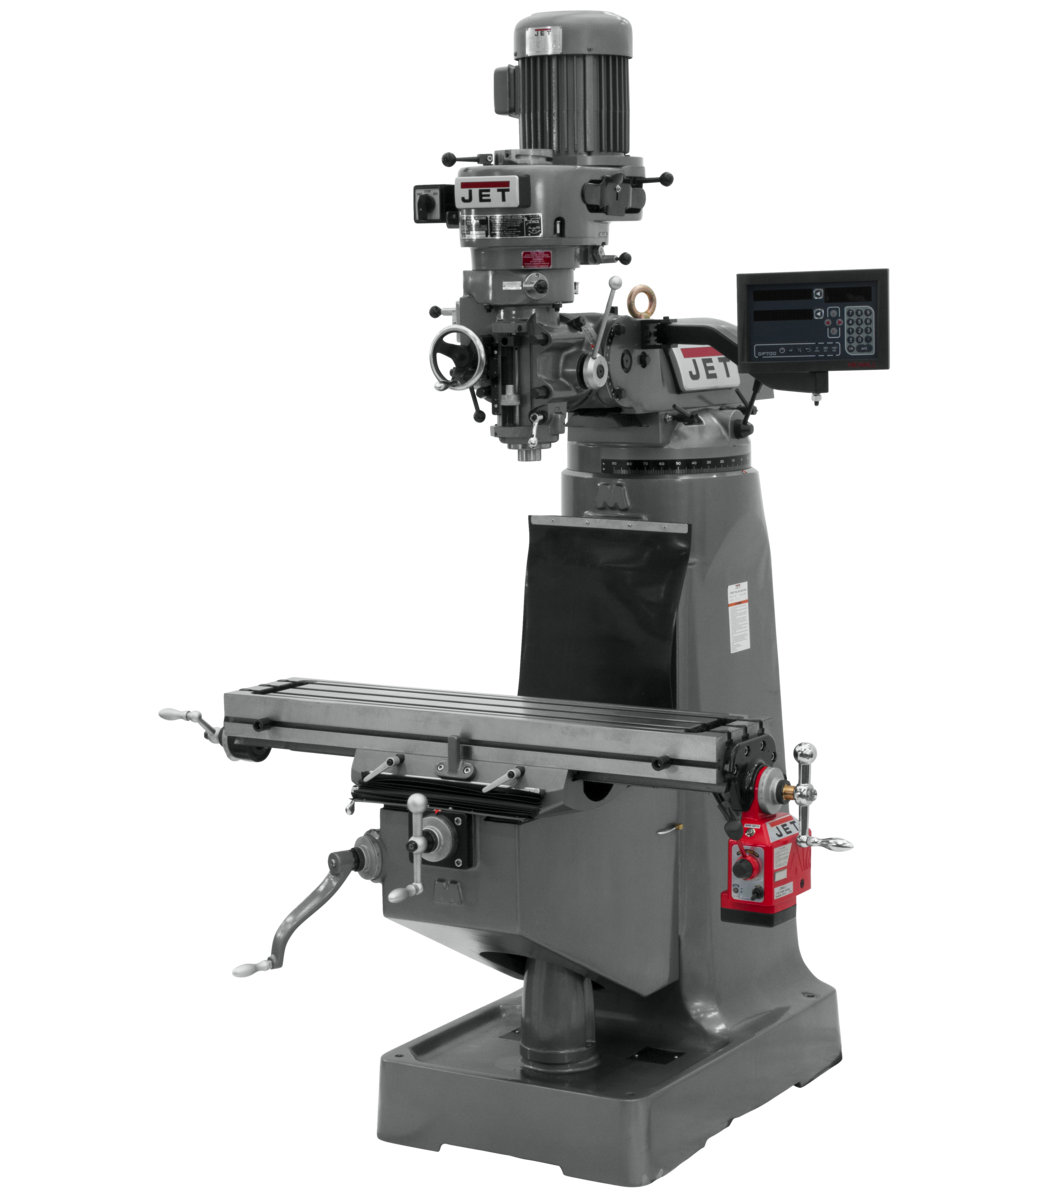 JTM-2 Mill With 3-Axis Newall DP700 DRO(Quill) With X-Axis Powerfeed